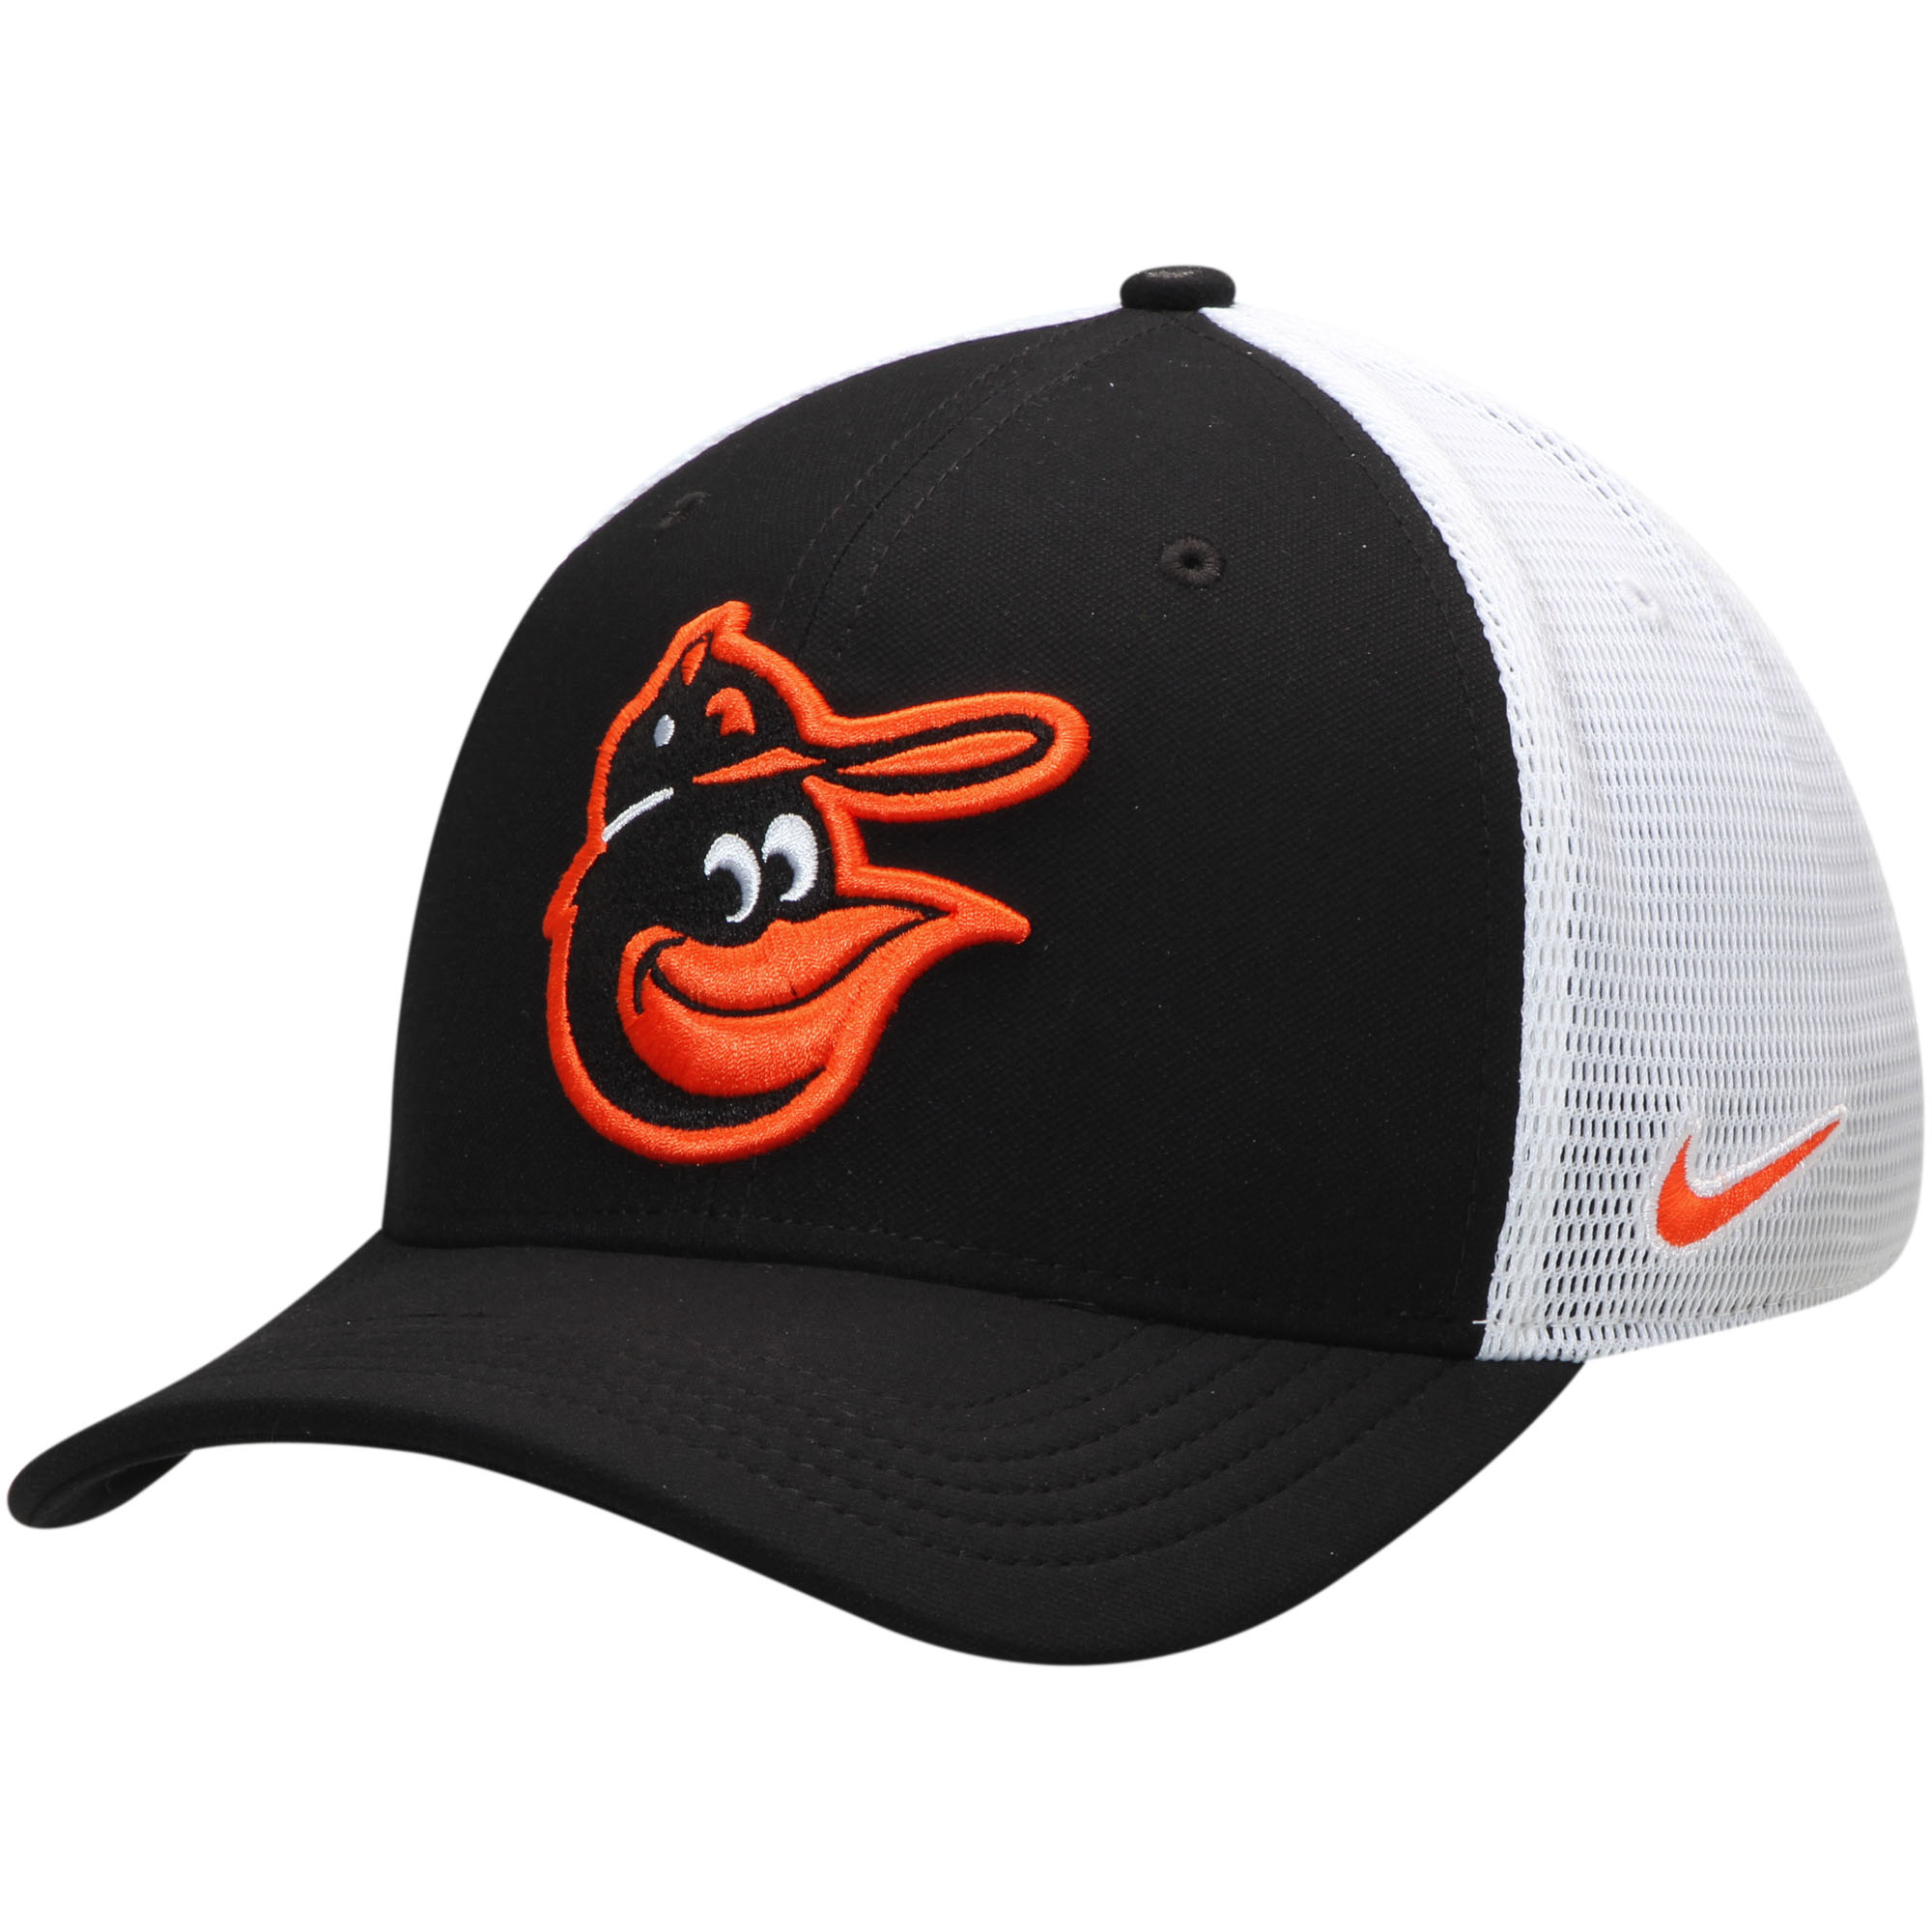 8a99cabf30721 Baltimore Orioles Nike Aerobill Classic 99 Meshback Flex Fit Hat ...